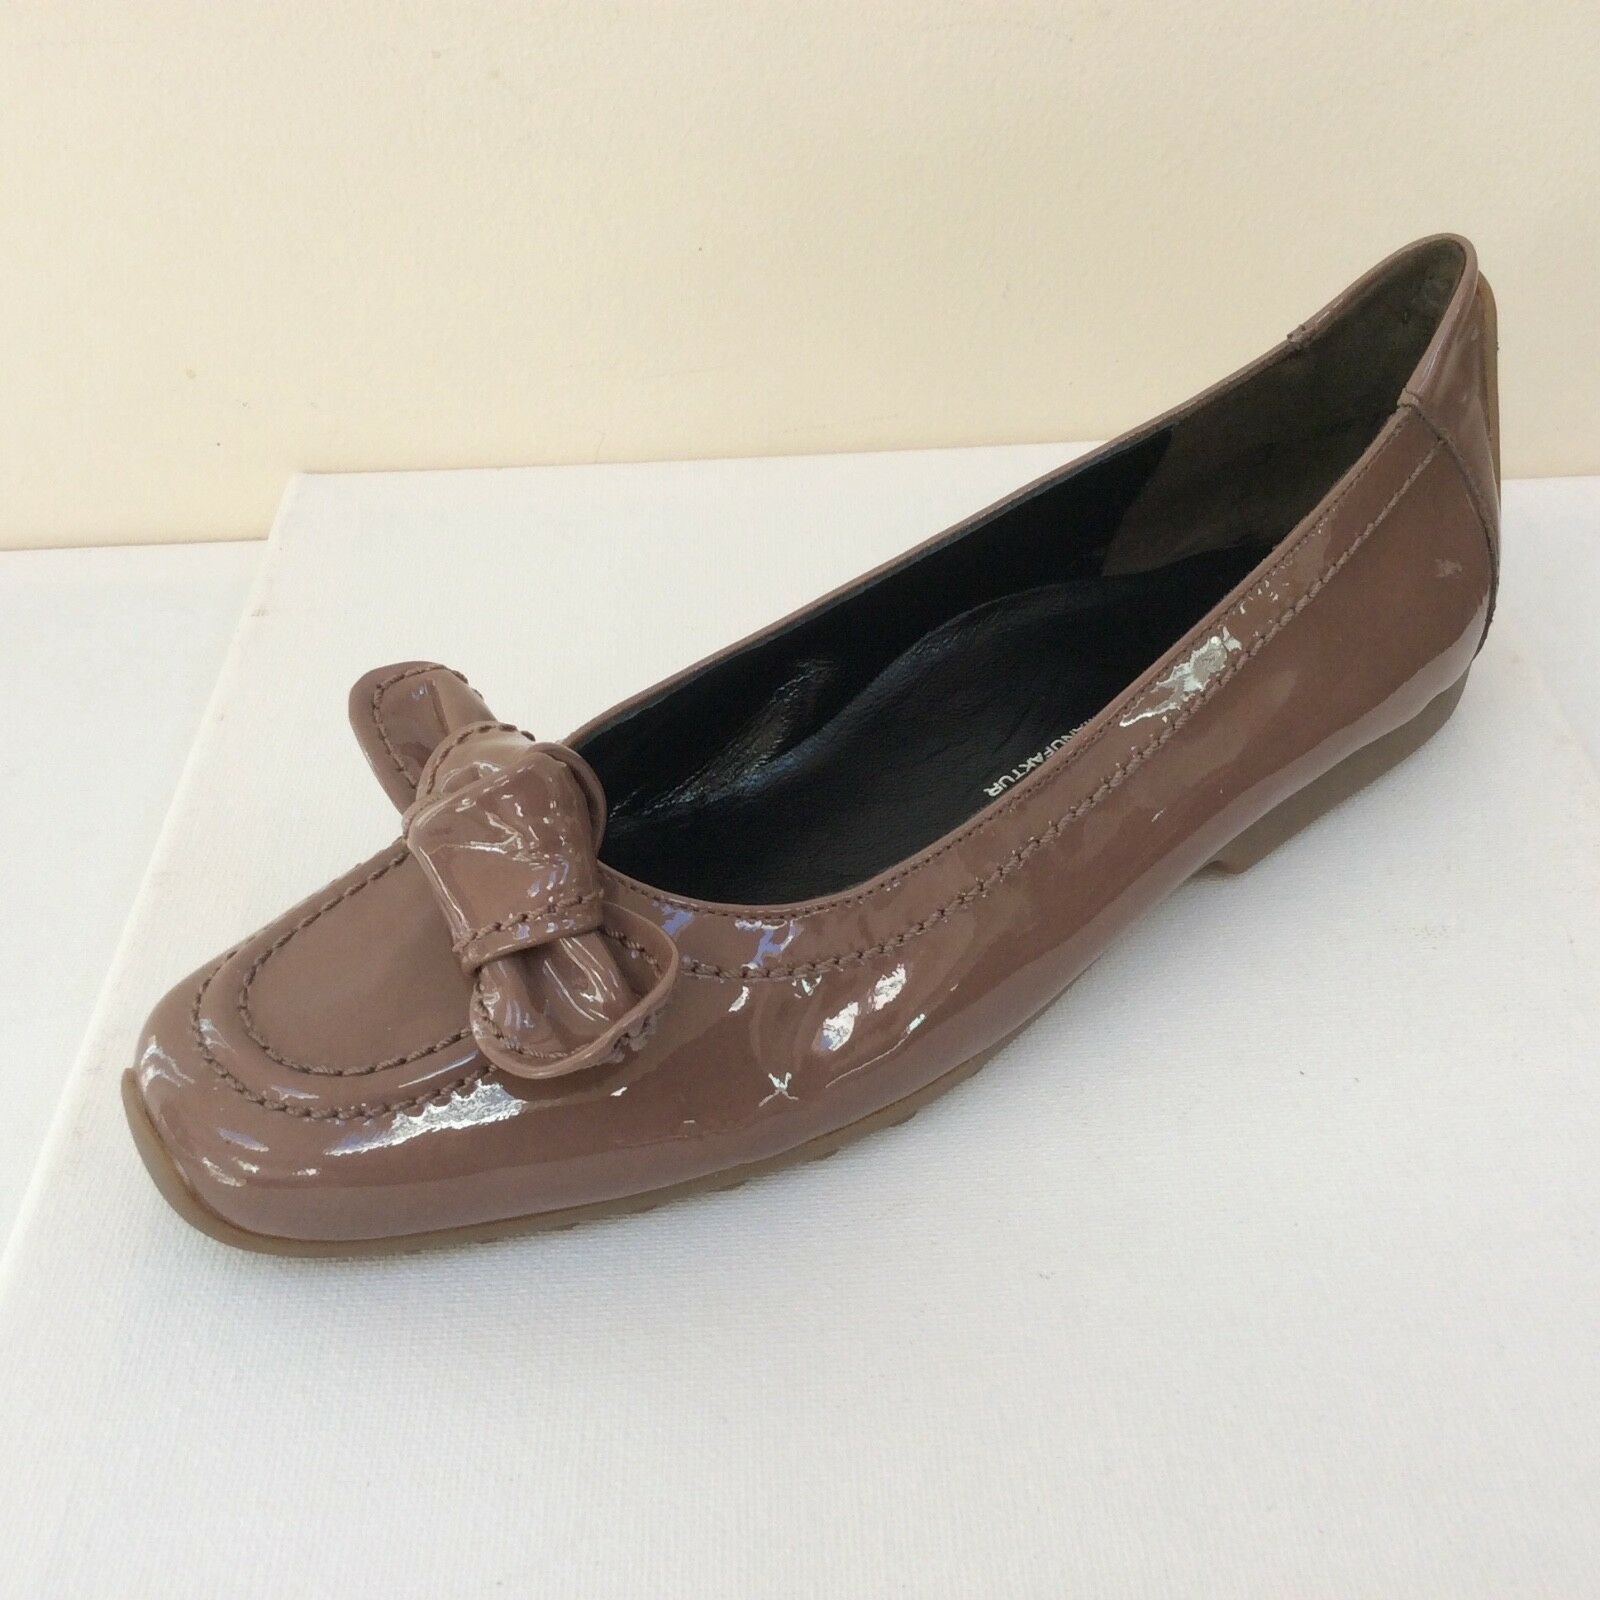 K&S Susa winter rose patent flats with bow detail, UK 5/EU 38,   BNWB